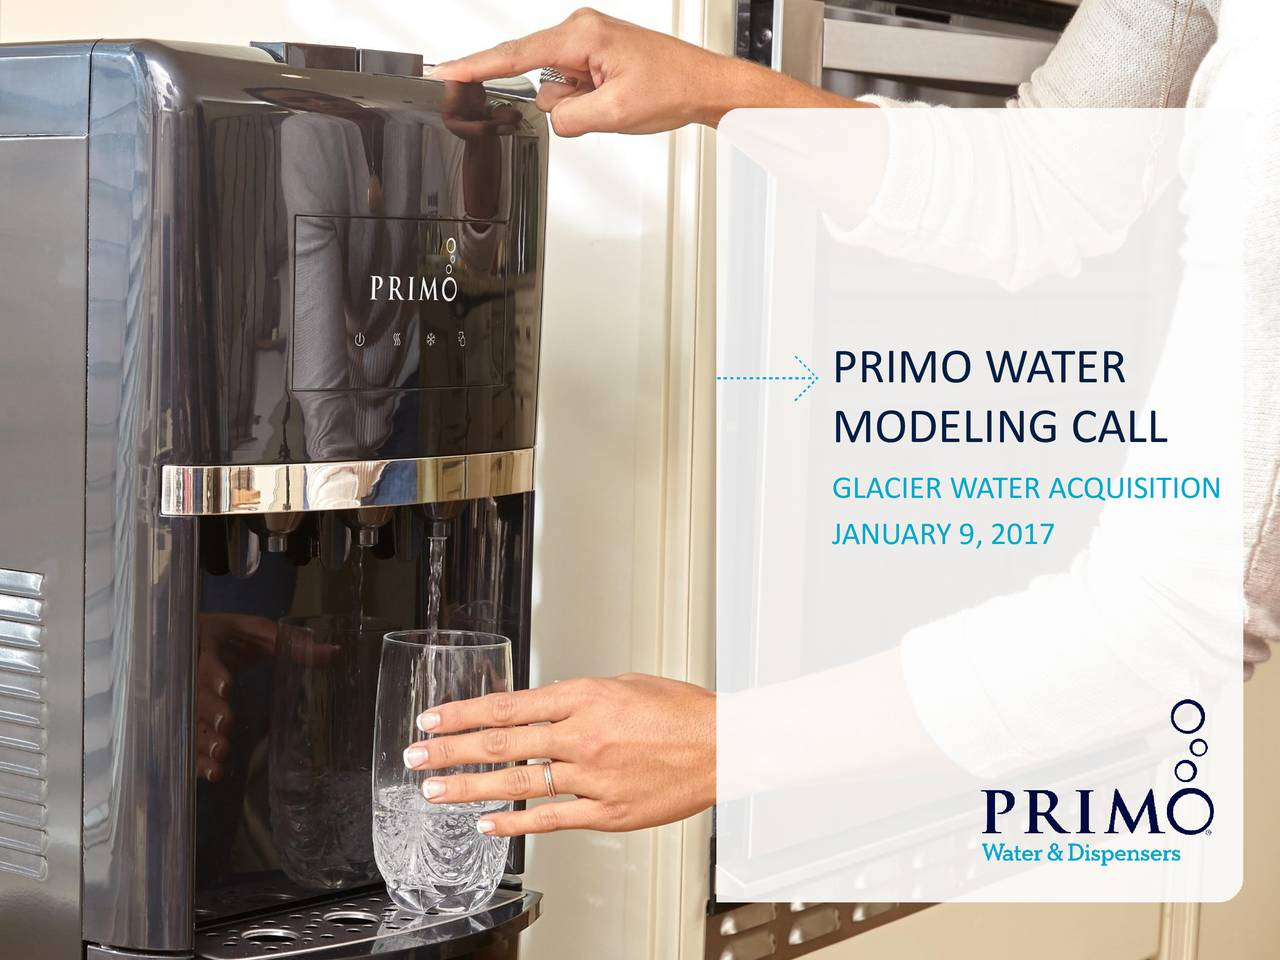 modeling call glacier water acquisition january 9 - Primo Water Cooler